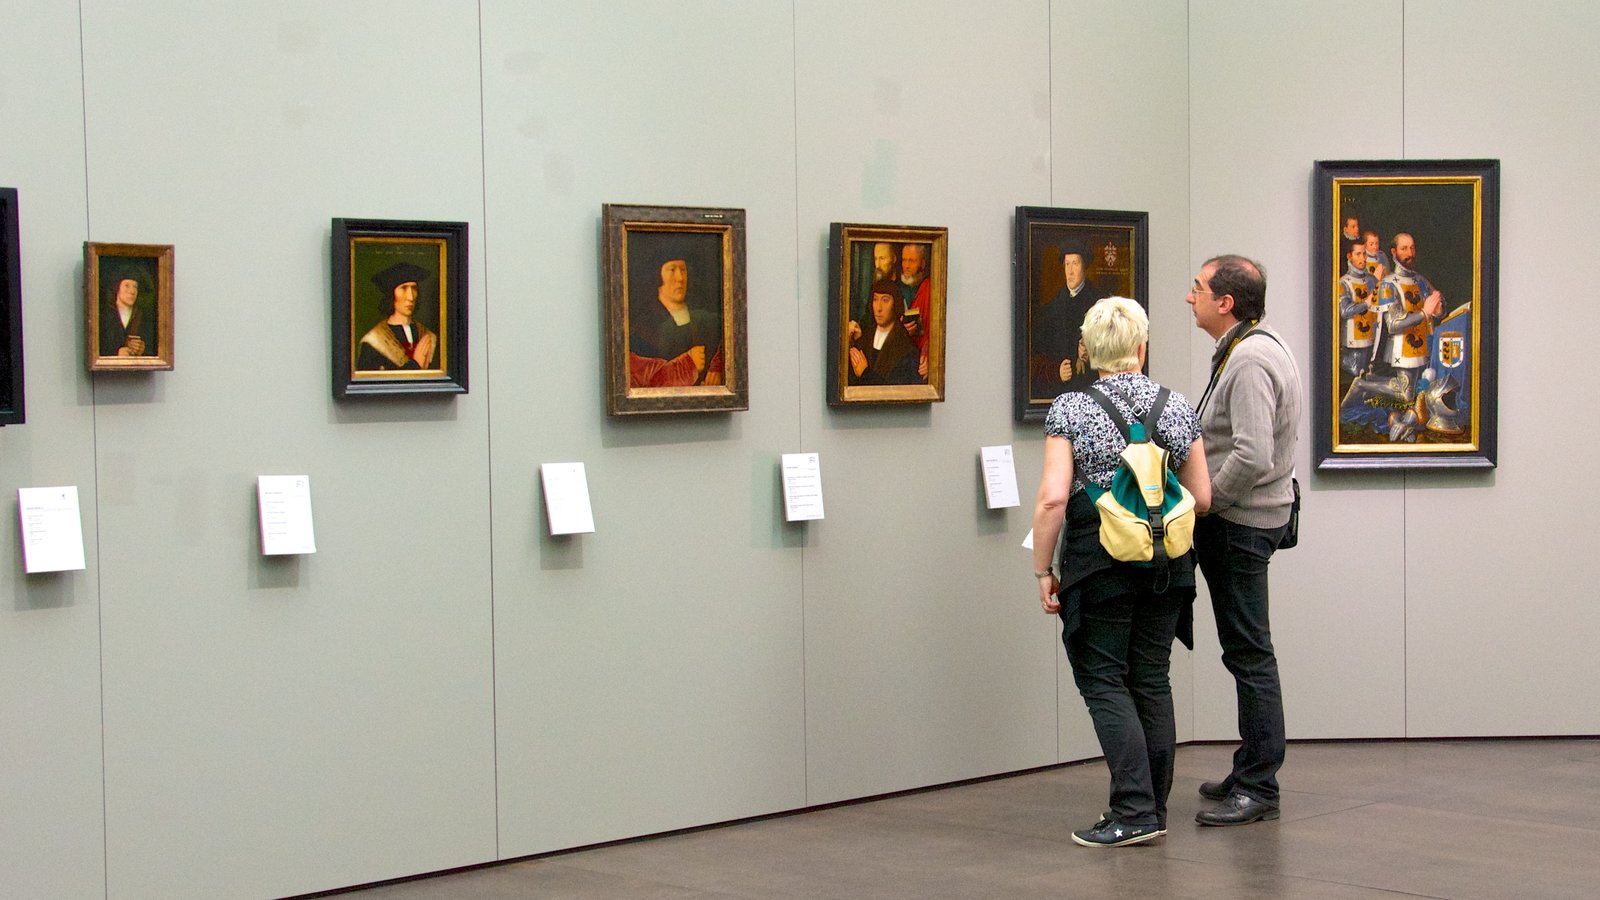 Groeningemuseum showing interior views and art as well as a couple